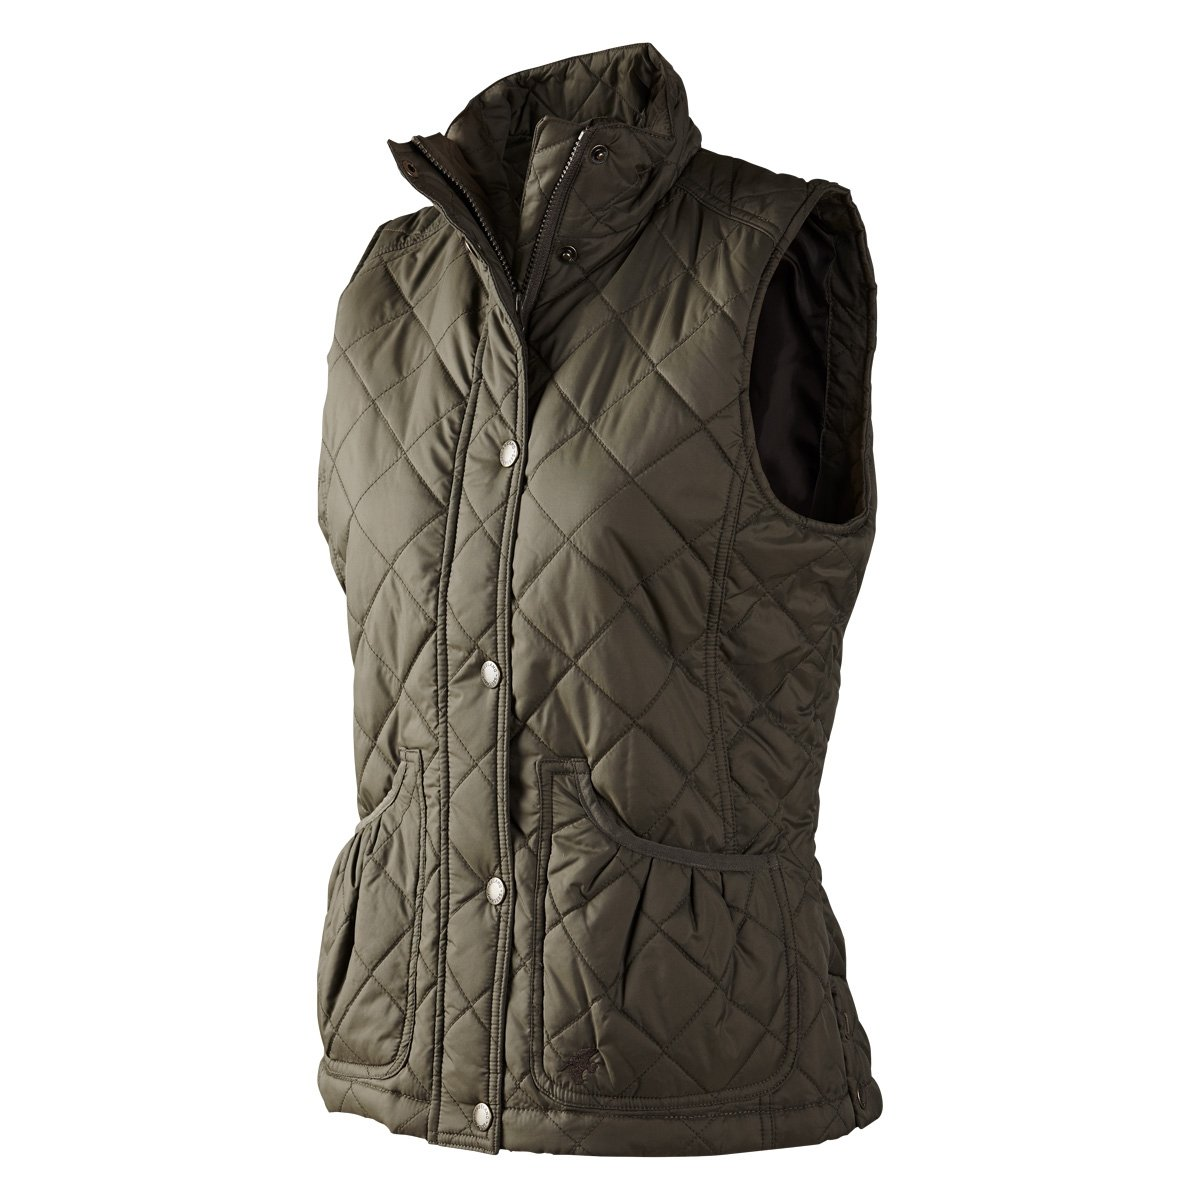 Seeland Cottage Quilt Lady Waistcoat - Black Olive - reid outdoors